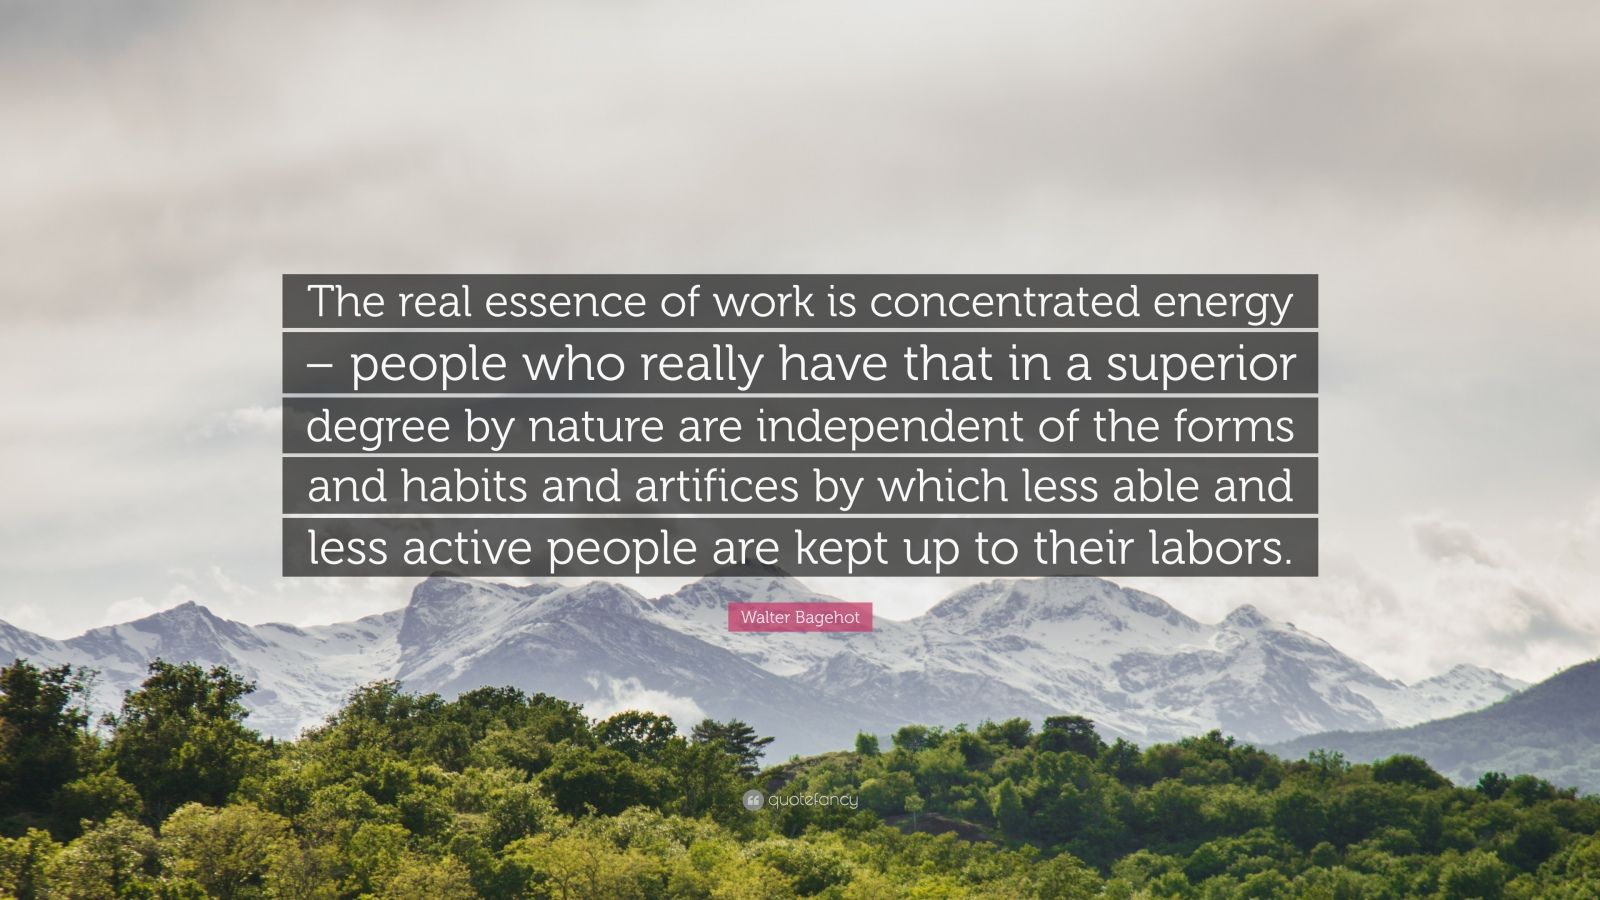 """Walter Bagehot Quote: """"The real essence of work is concentrated energy – people who really have that in a superior degree by nature are independent of the forms and habits and artifices by which less able and less active people are kept up to their labors."""""""